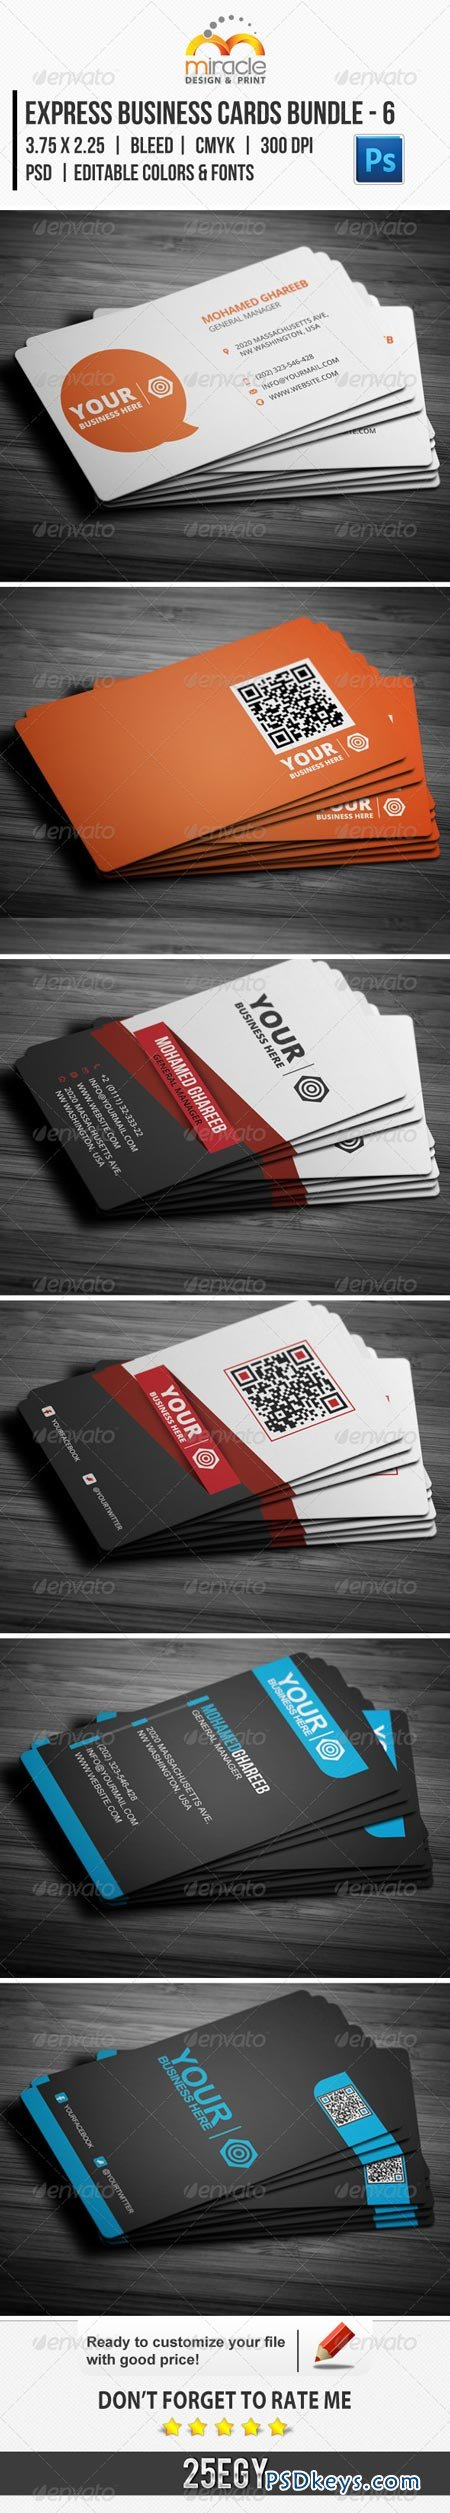 Express business cards bundle 6 5767557 free download photoshop express business cards bundle 6 5767557 reheart Images